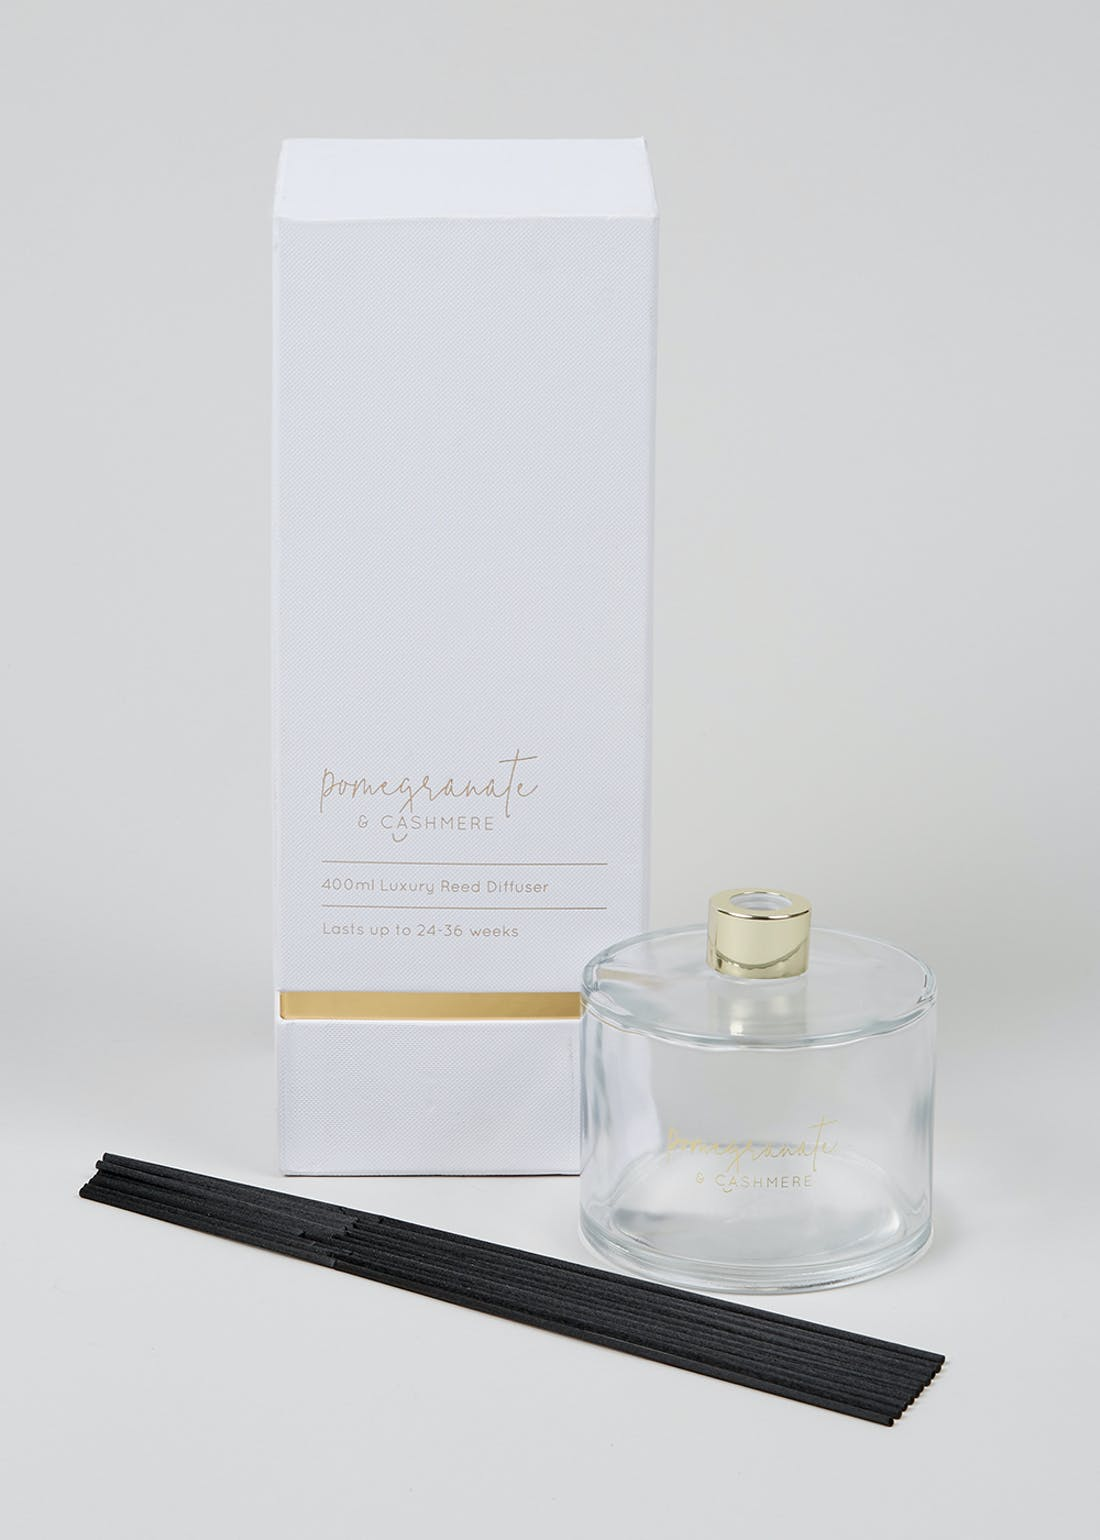 Pomegranate & Cashmere Luxury Reed Diffuser (400ml)